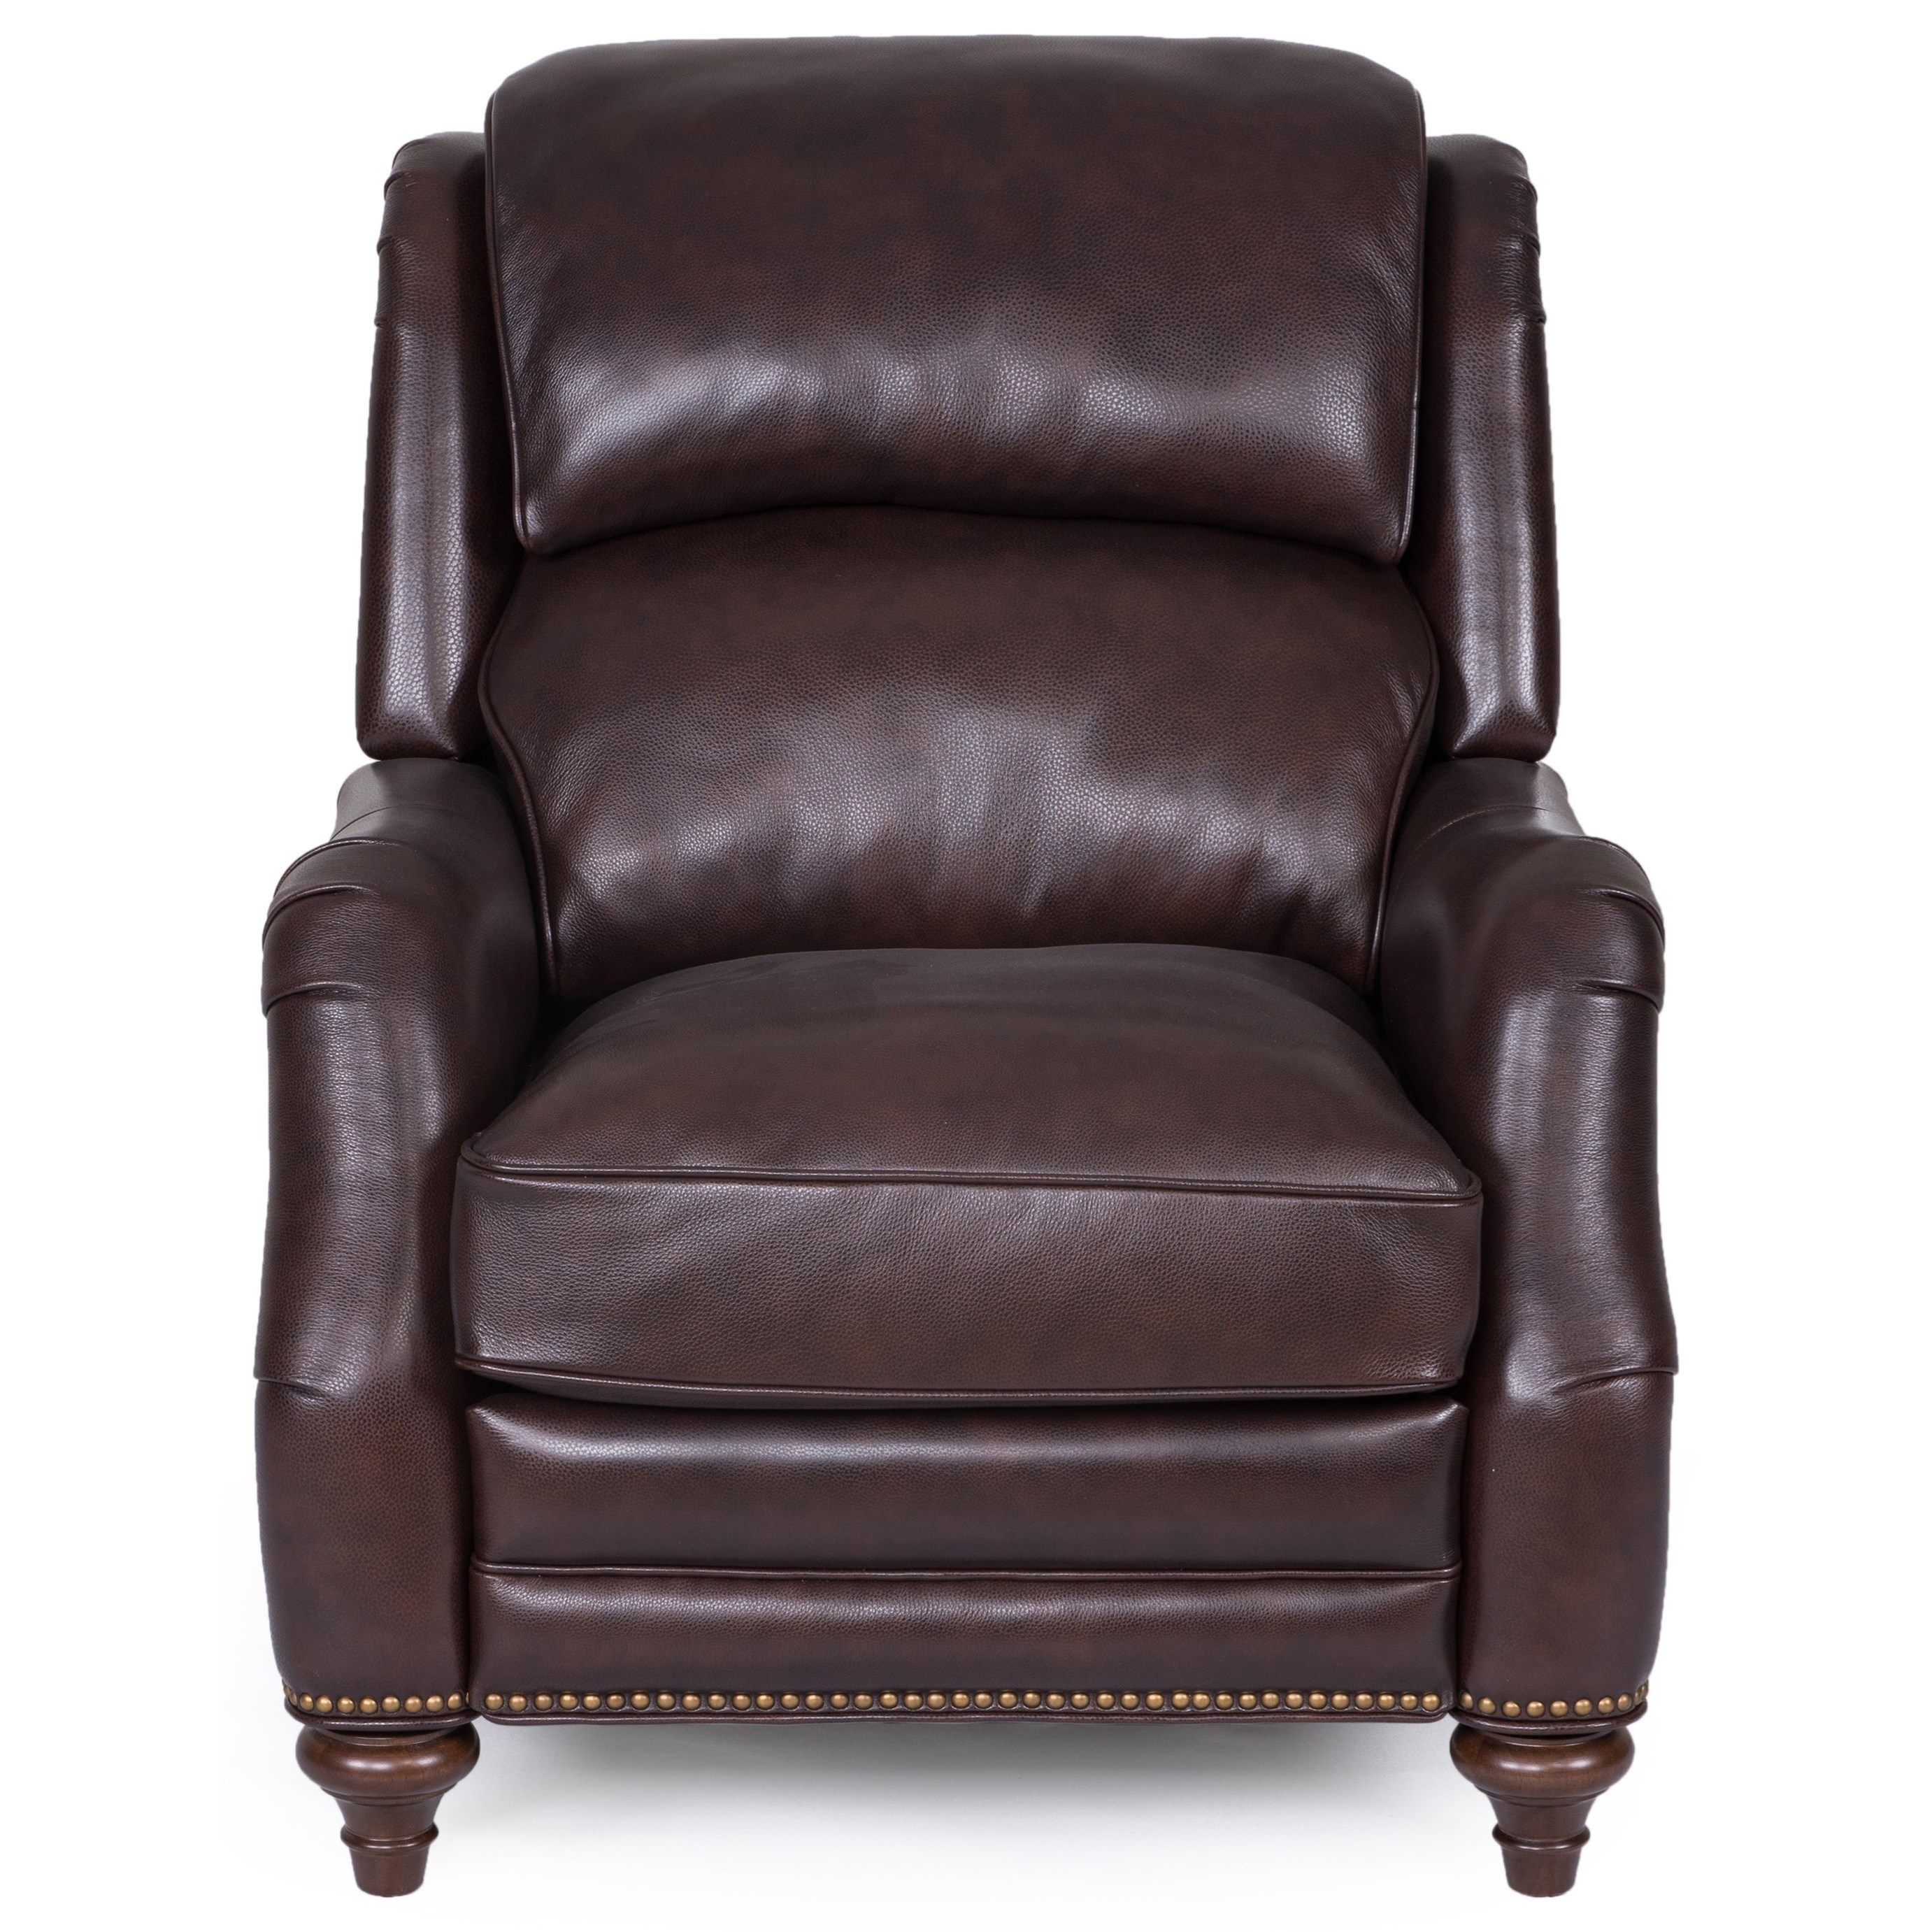 synergy recliner chair host dining room chairs home furnishings 1368 pushback with